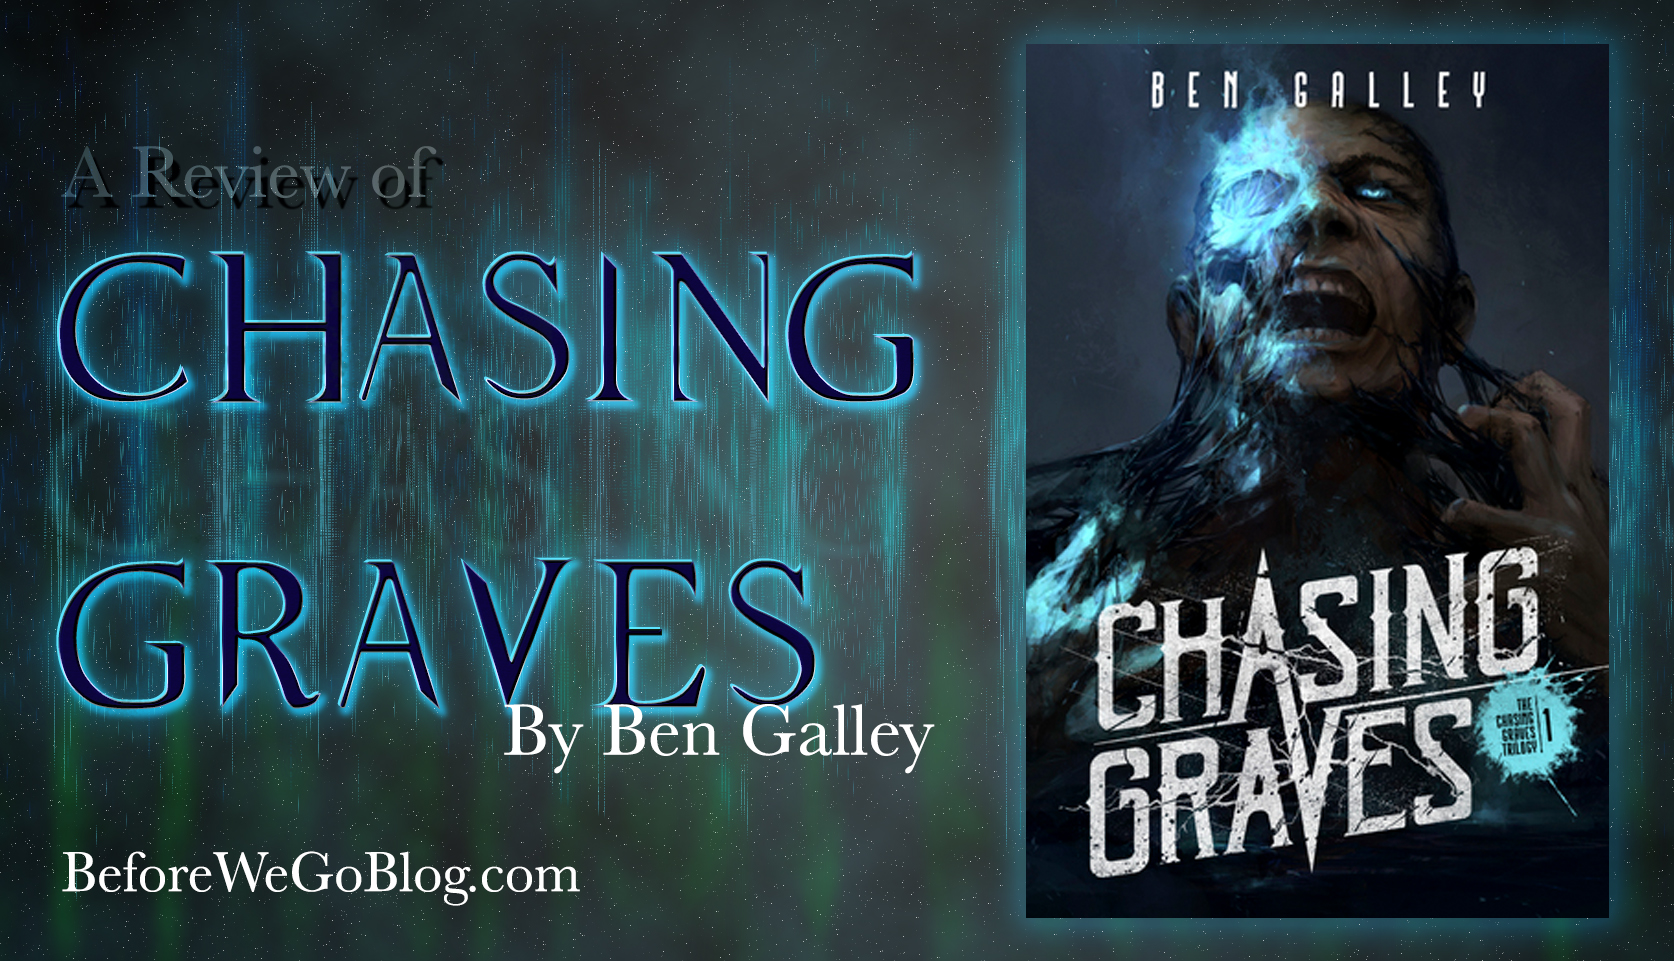 Review of Ben Galley's Chasing Graves